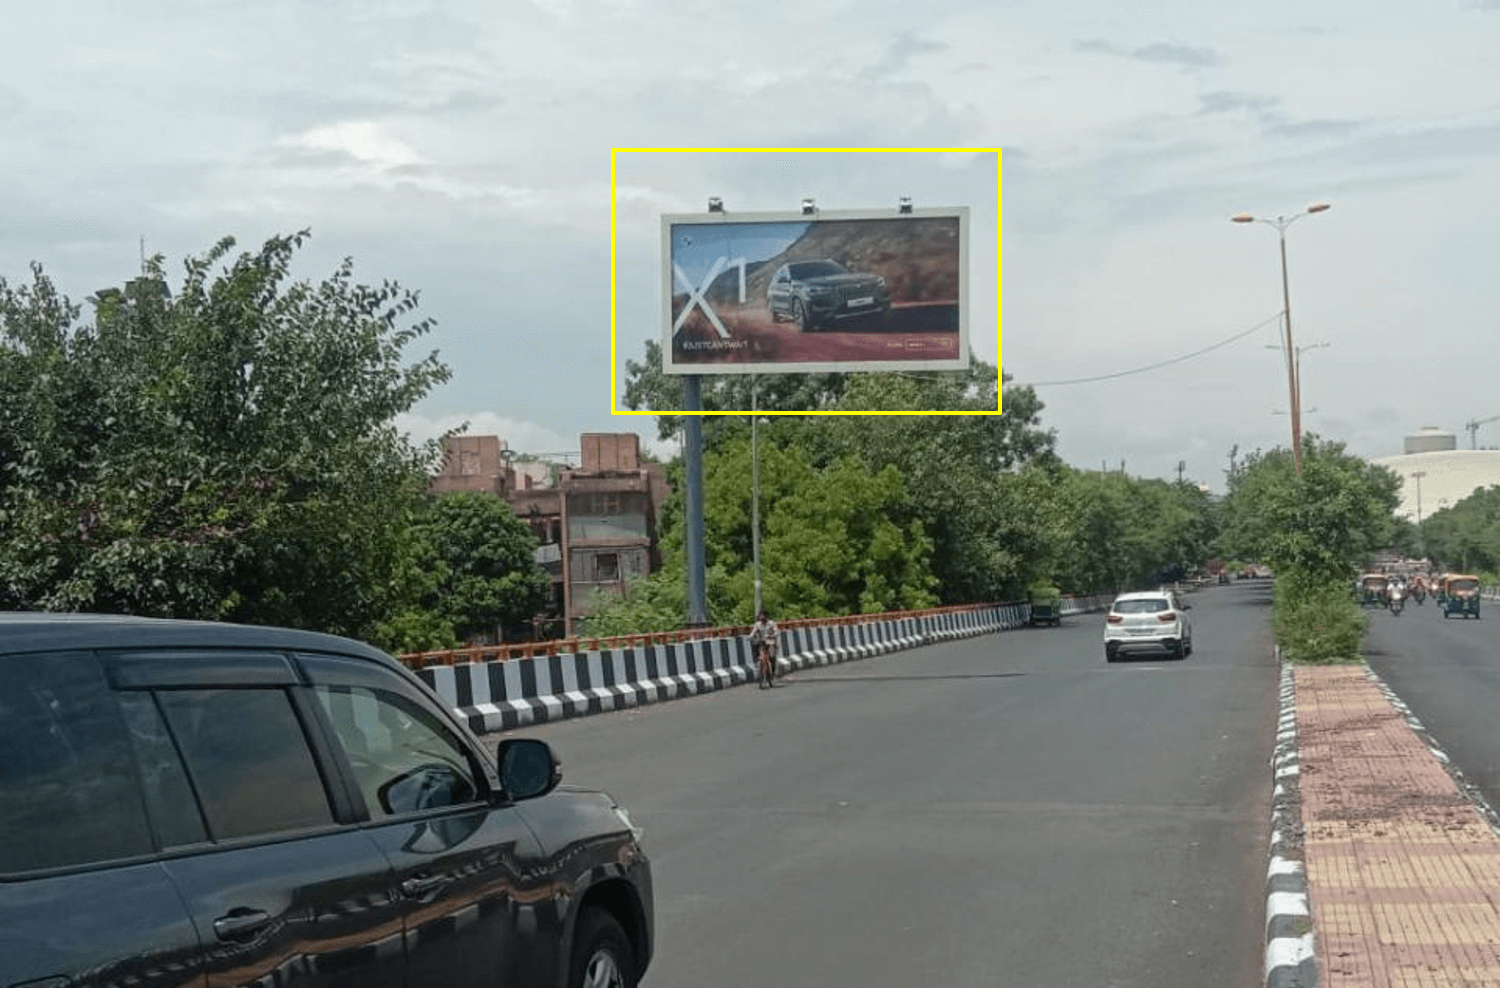 Outdoor Advertising at Defence Colony Flyover FTC from South Extension towards JLN Stadium / Khan Market / Sai Baba Mandir, Delhi